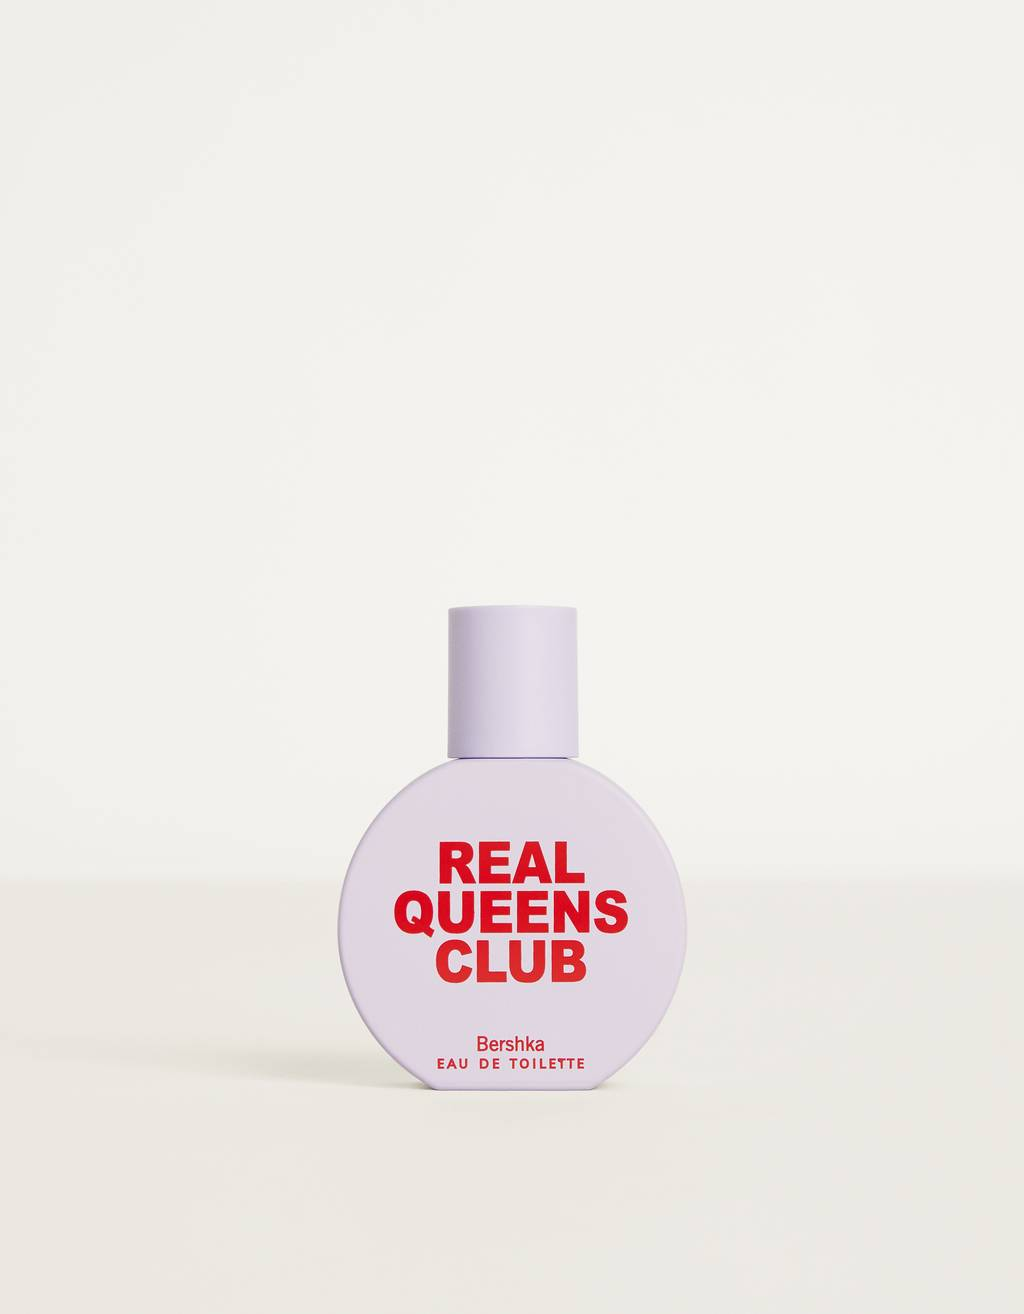 Eau de toilette Real queens club